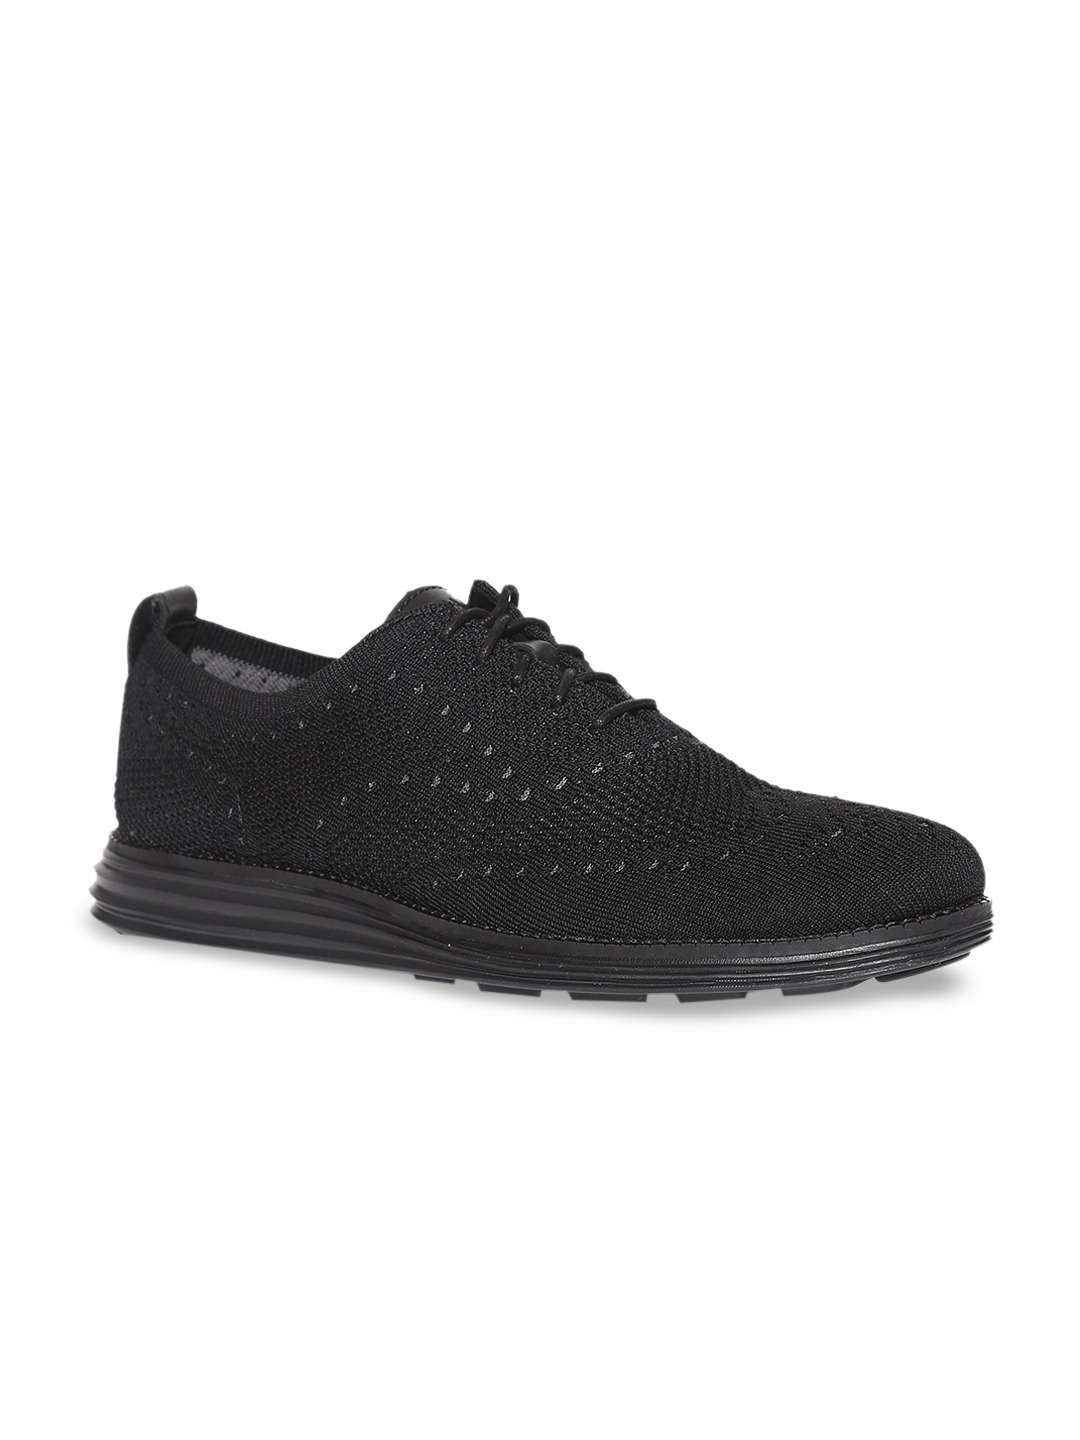 Black Originalgrand Stitchlite Wingtip Oxford Sneakers